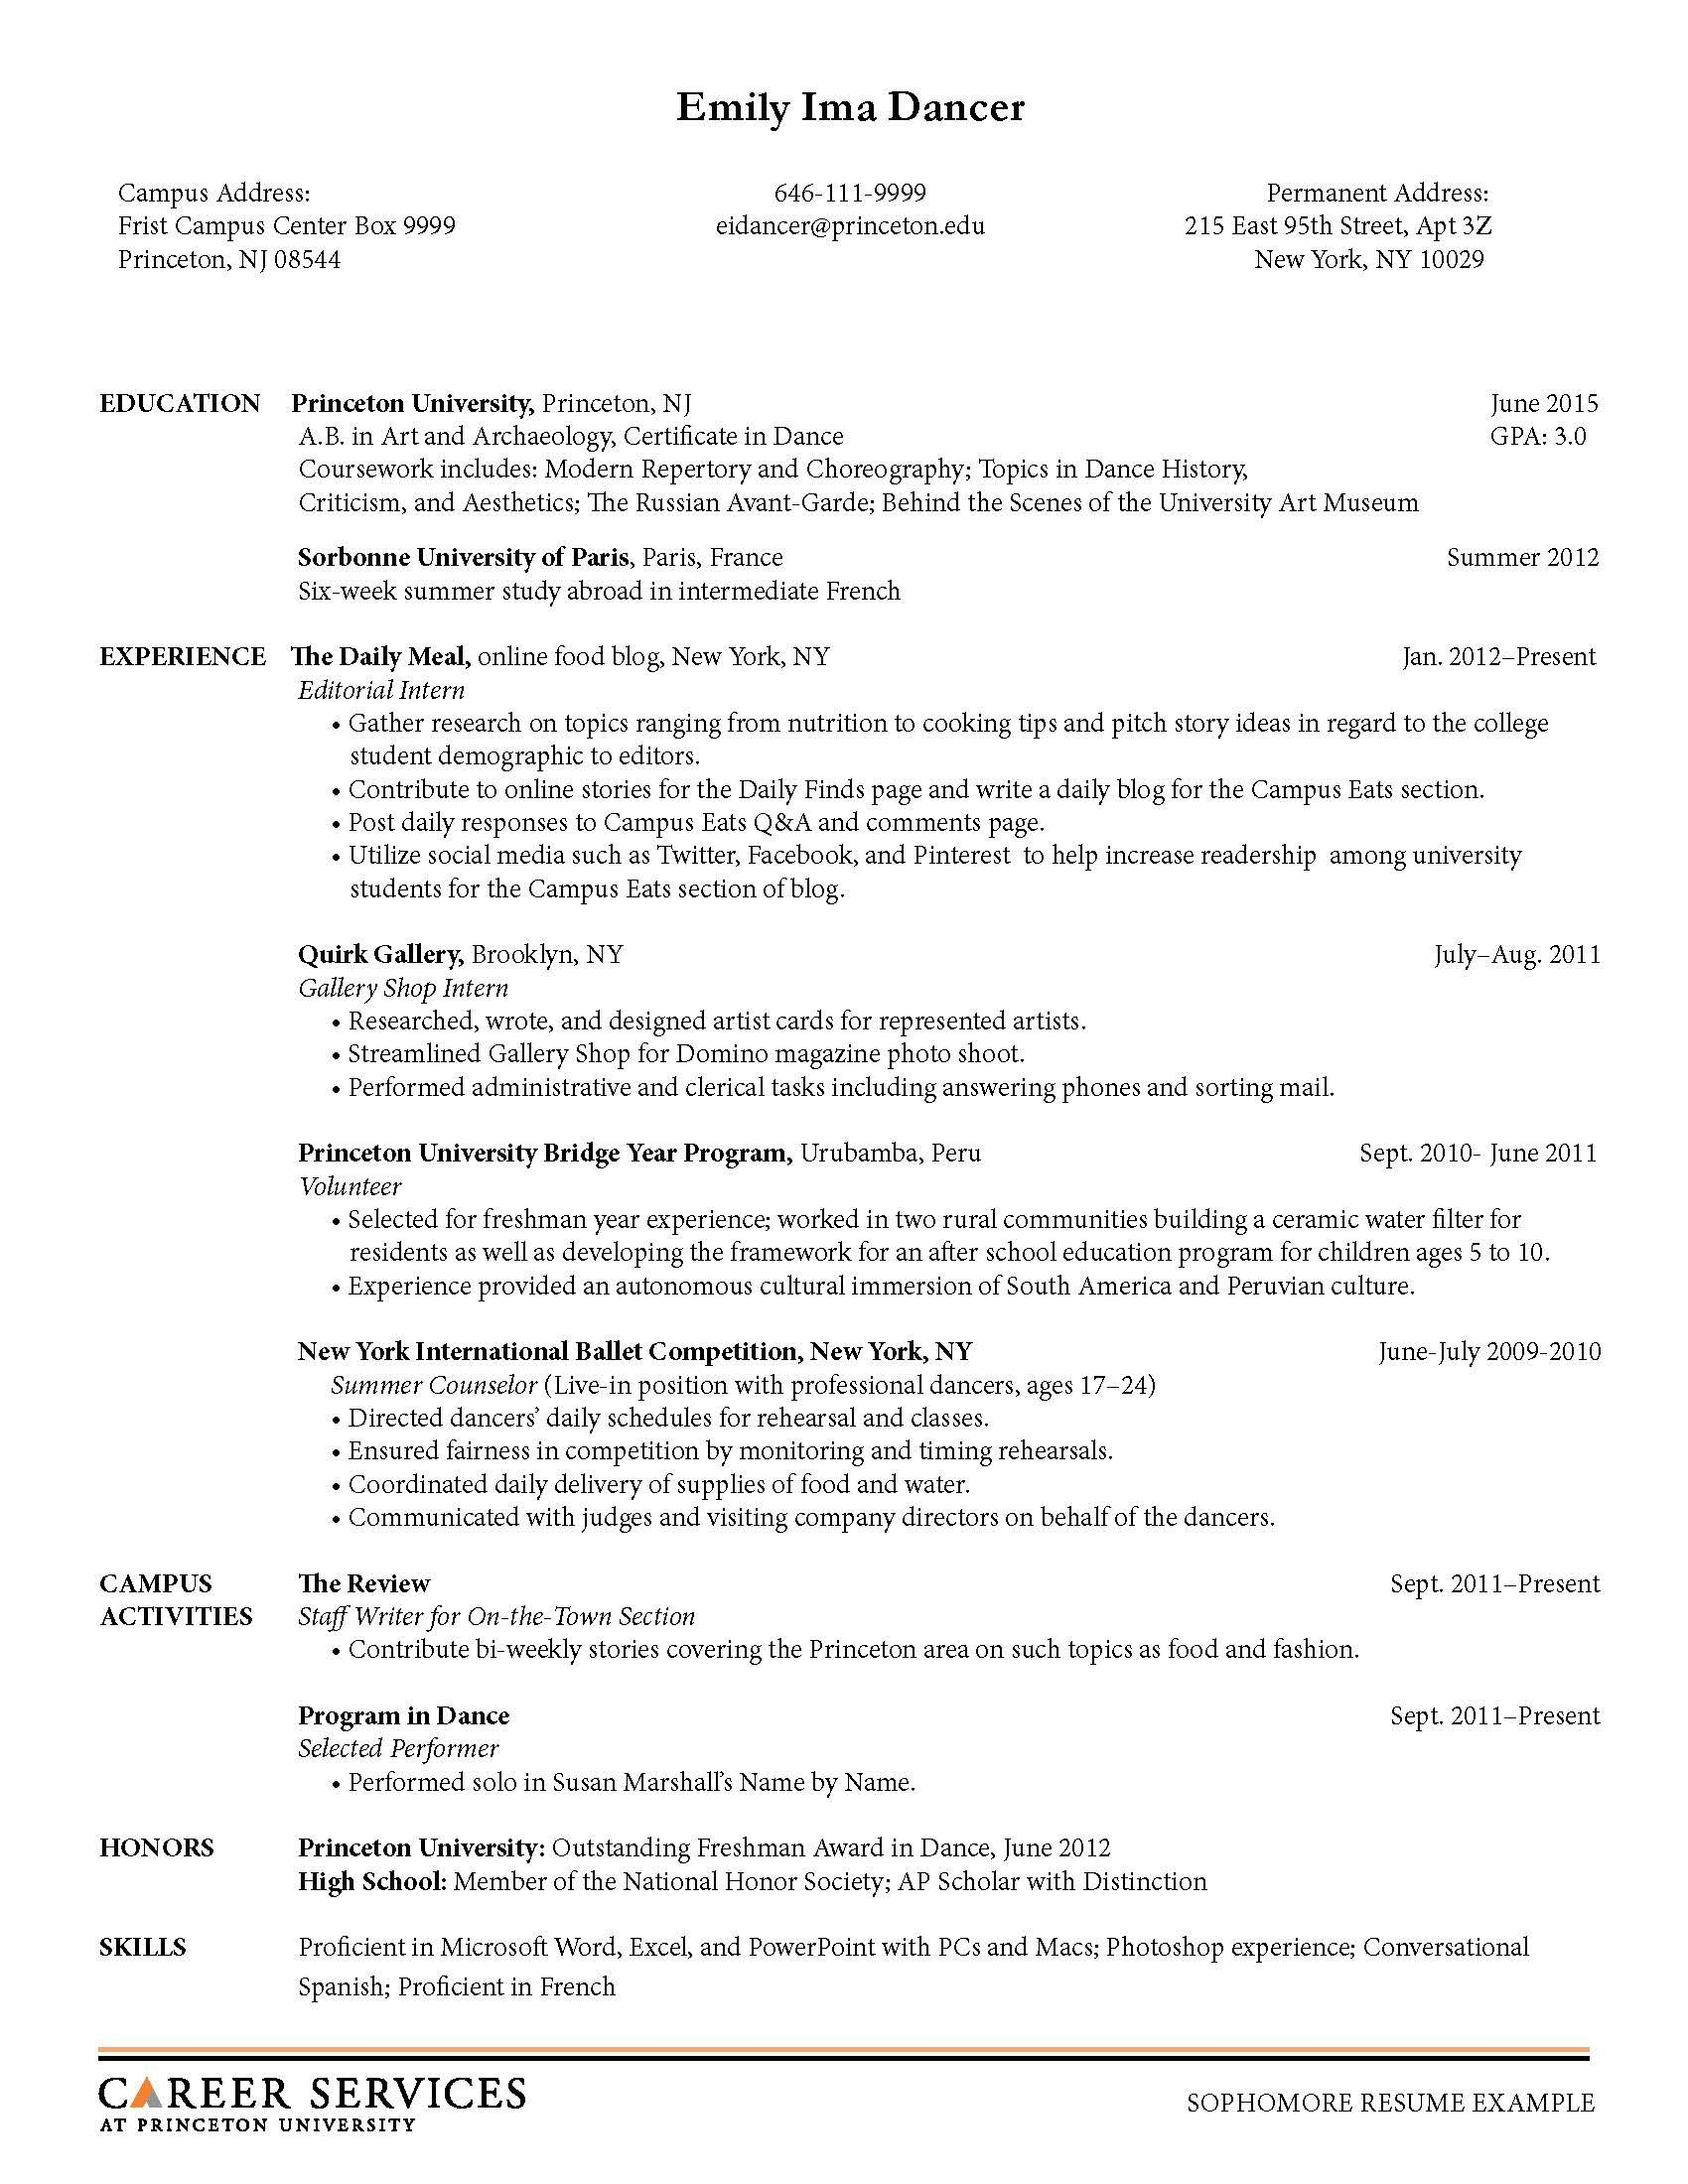 Opposenewapstandardsus  Prepossessing Sample Resume Resume And Career On Pinterest With Glamorous Security Resume Examples Besides Examples Of Objective For Resume Furthermore Job Objective Resume With Divine Nanny Resume Samples Also Soft Skills For Resume In Addition Skills Summary For Resume And Writing An Objective For Resume As Well As Dates On Resume Additionally Help Resume From Pinterestcom With Opposenewapstandardsus  Glamorous Sample Resume Resume And Career On Pinterest With Divine Security Resume Examples Besides Examples Of Objective For Resume Furthermore Job Objective Resume And Prepossessing Nanny Resume Samples Also Soft Skills For Resume In Addition Skills Summary For Resume From Pinterestcom